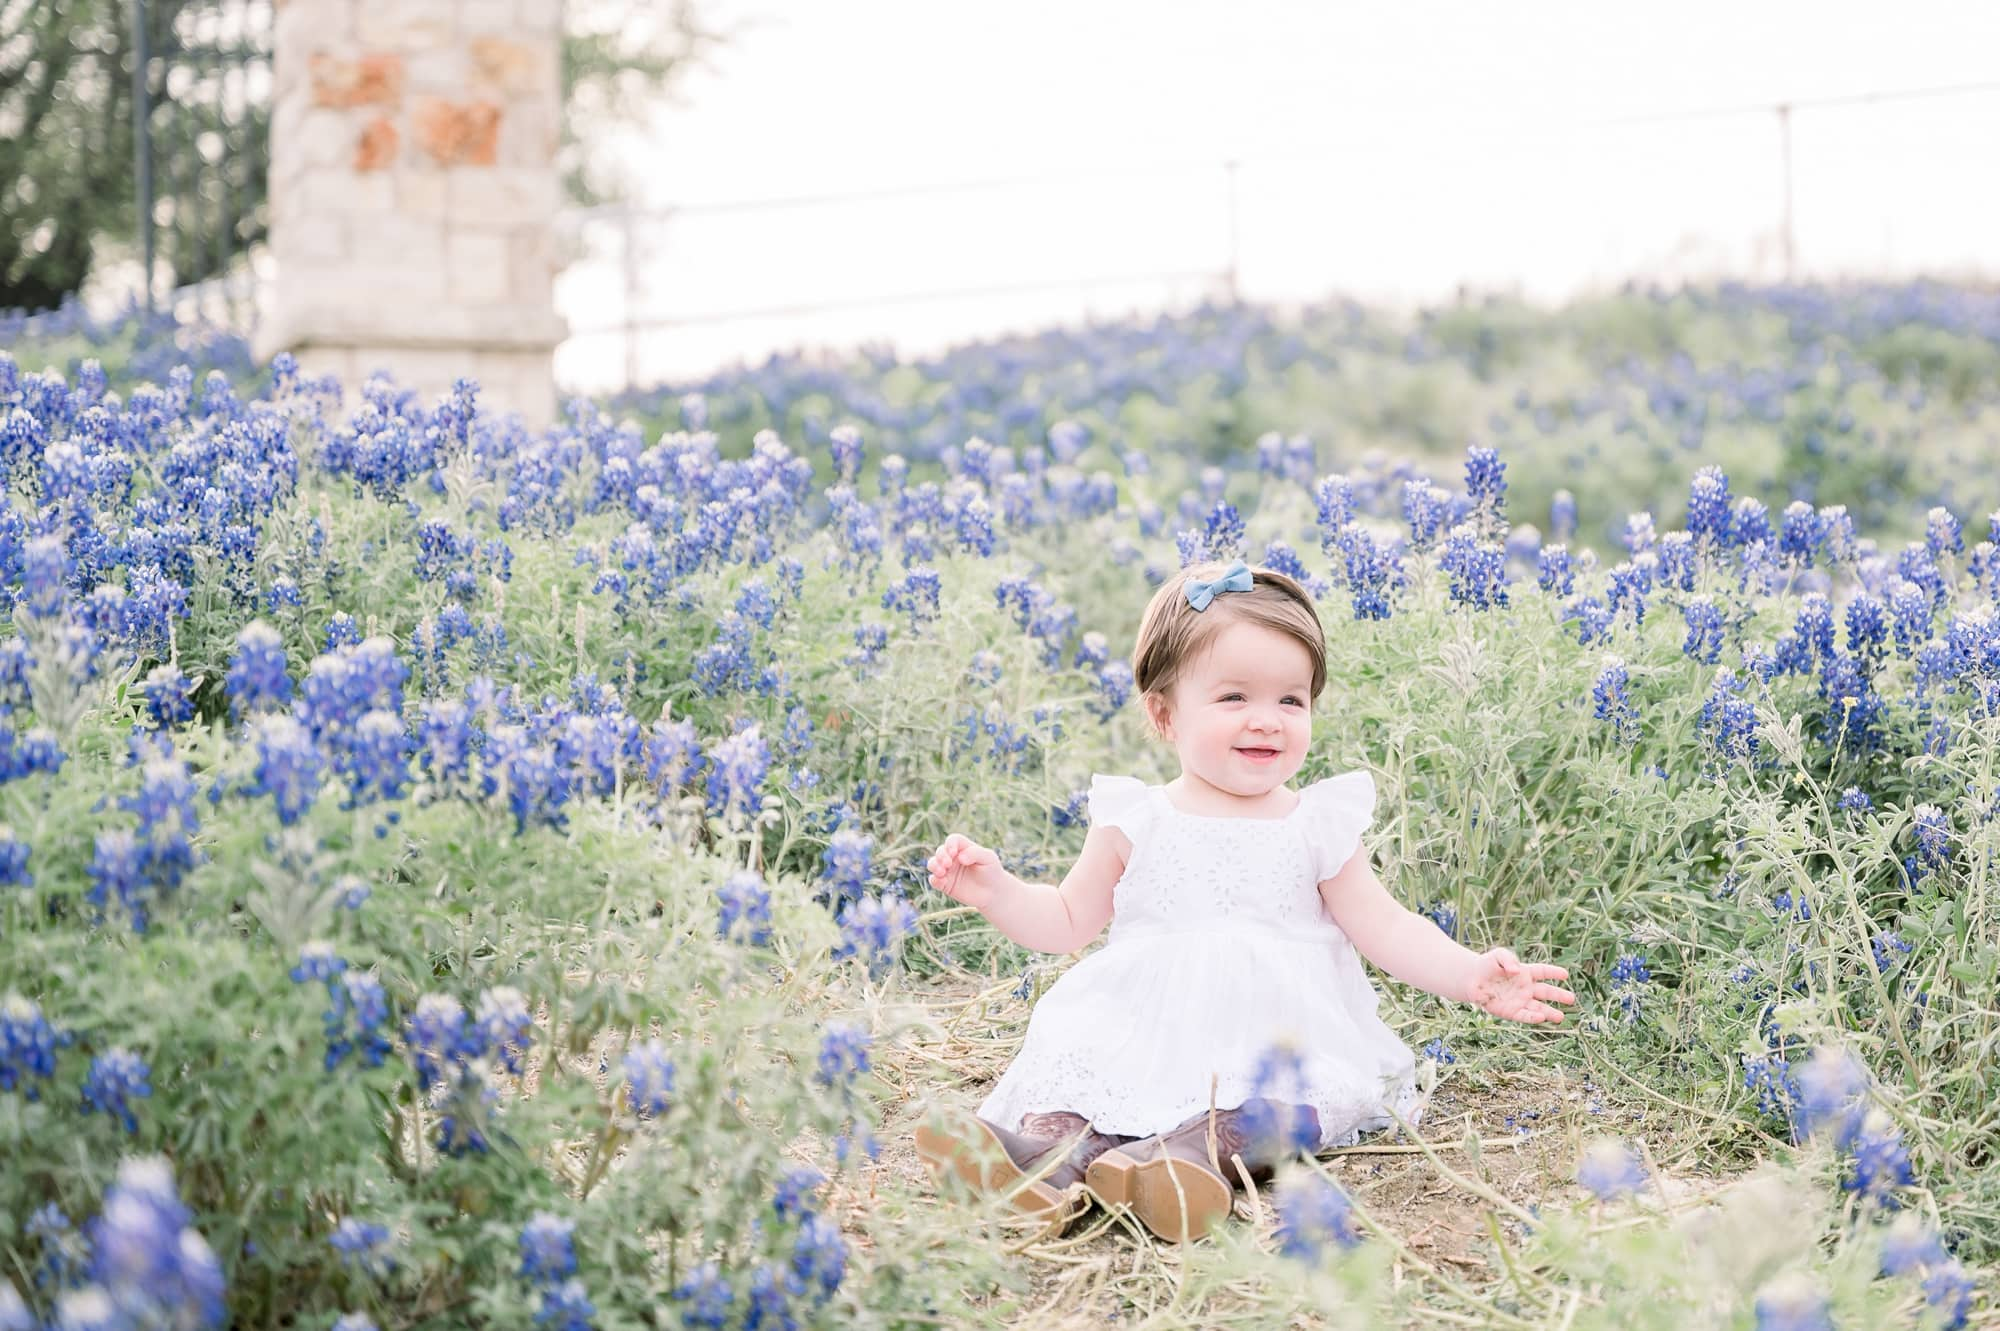 Baby girl smiling during family session in bluebonnet field by Prosper family photographer, Aimee Hamilton Photography.